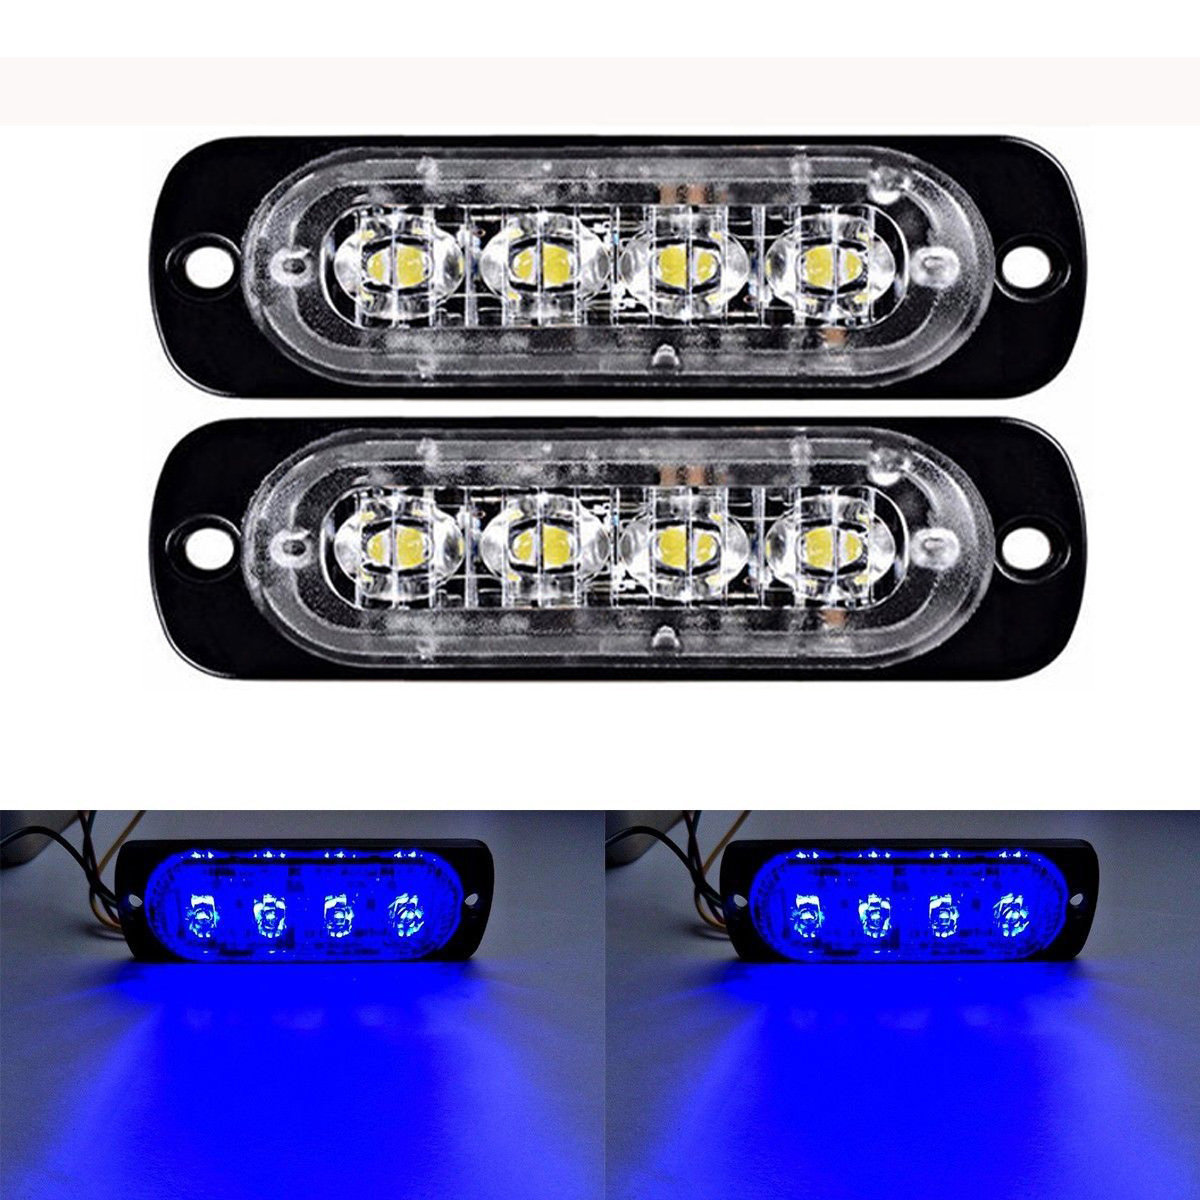 2x Blue Auto Suv 4 Led Strobe Lights High Power Warning Emergency Flash Light